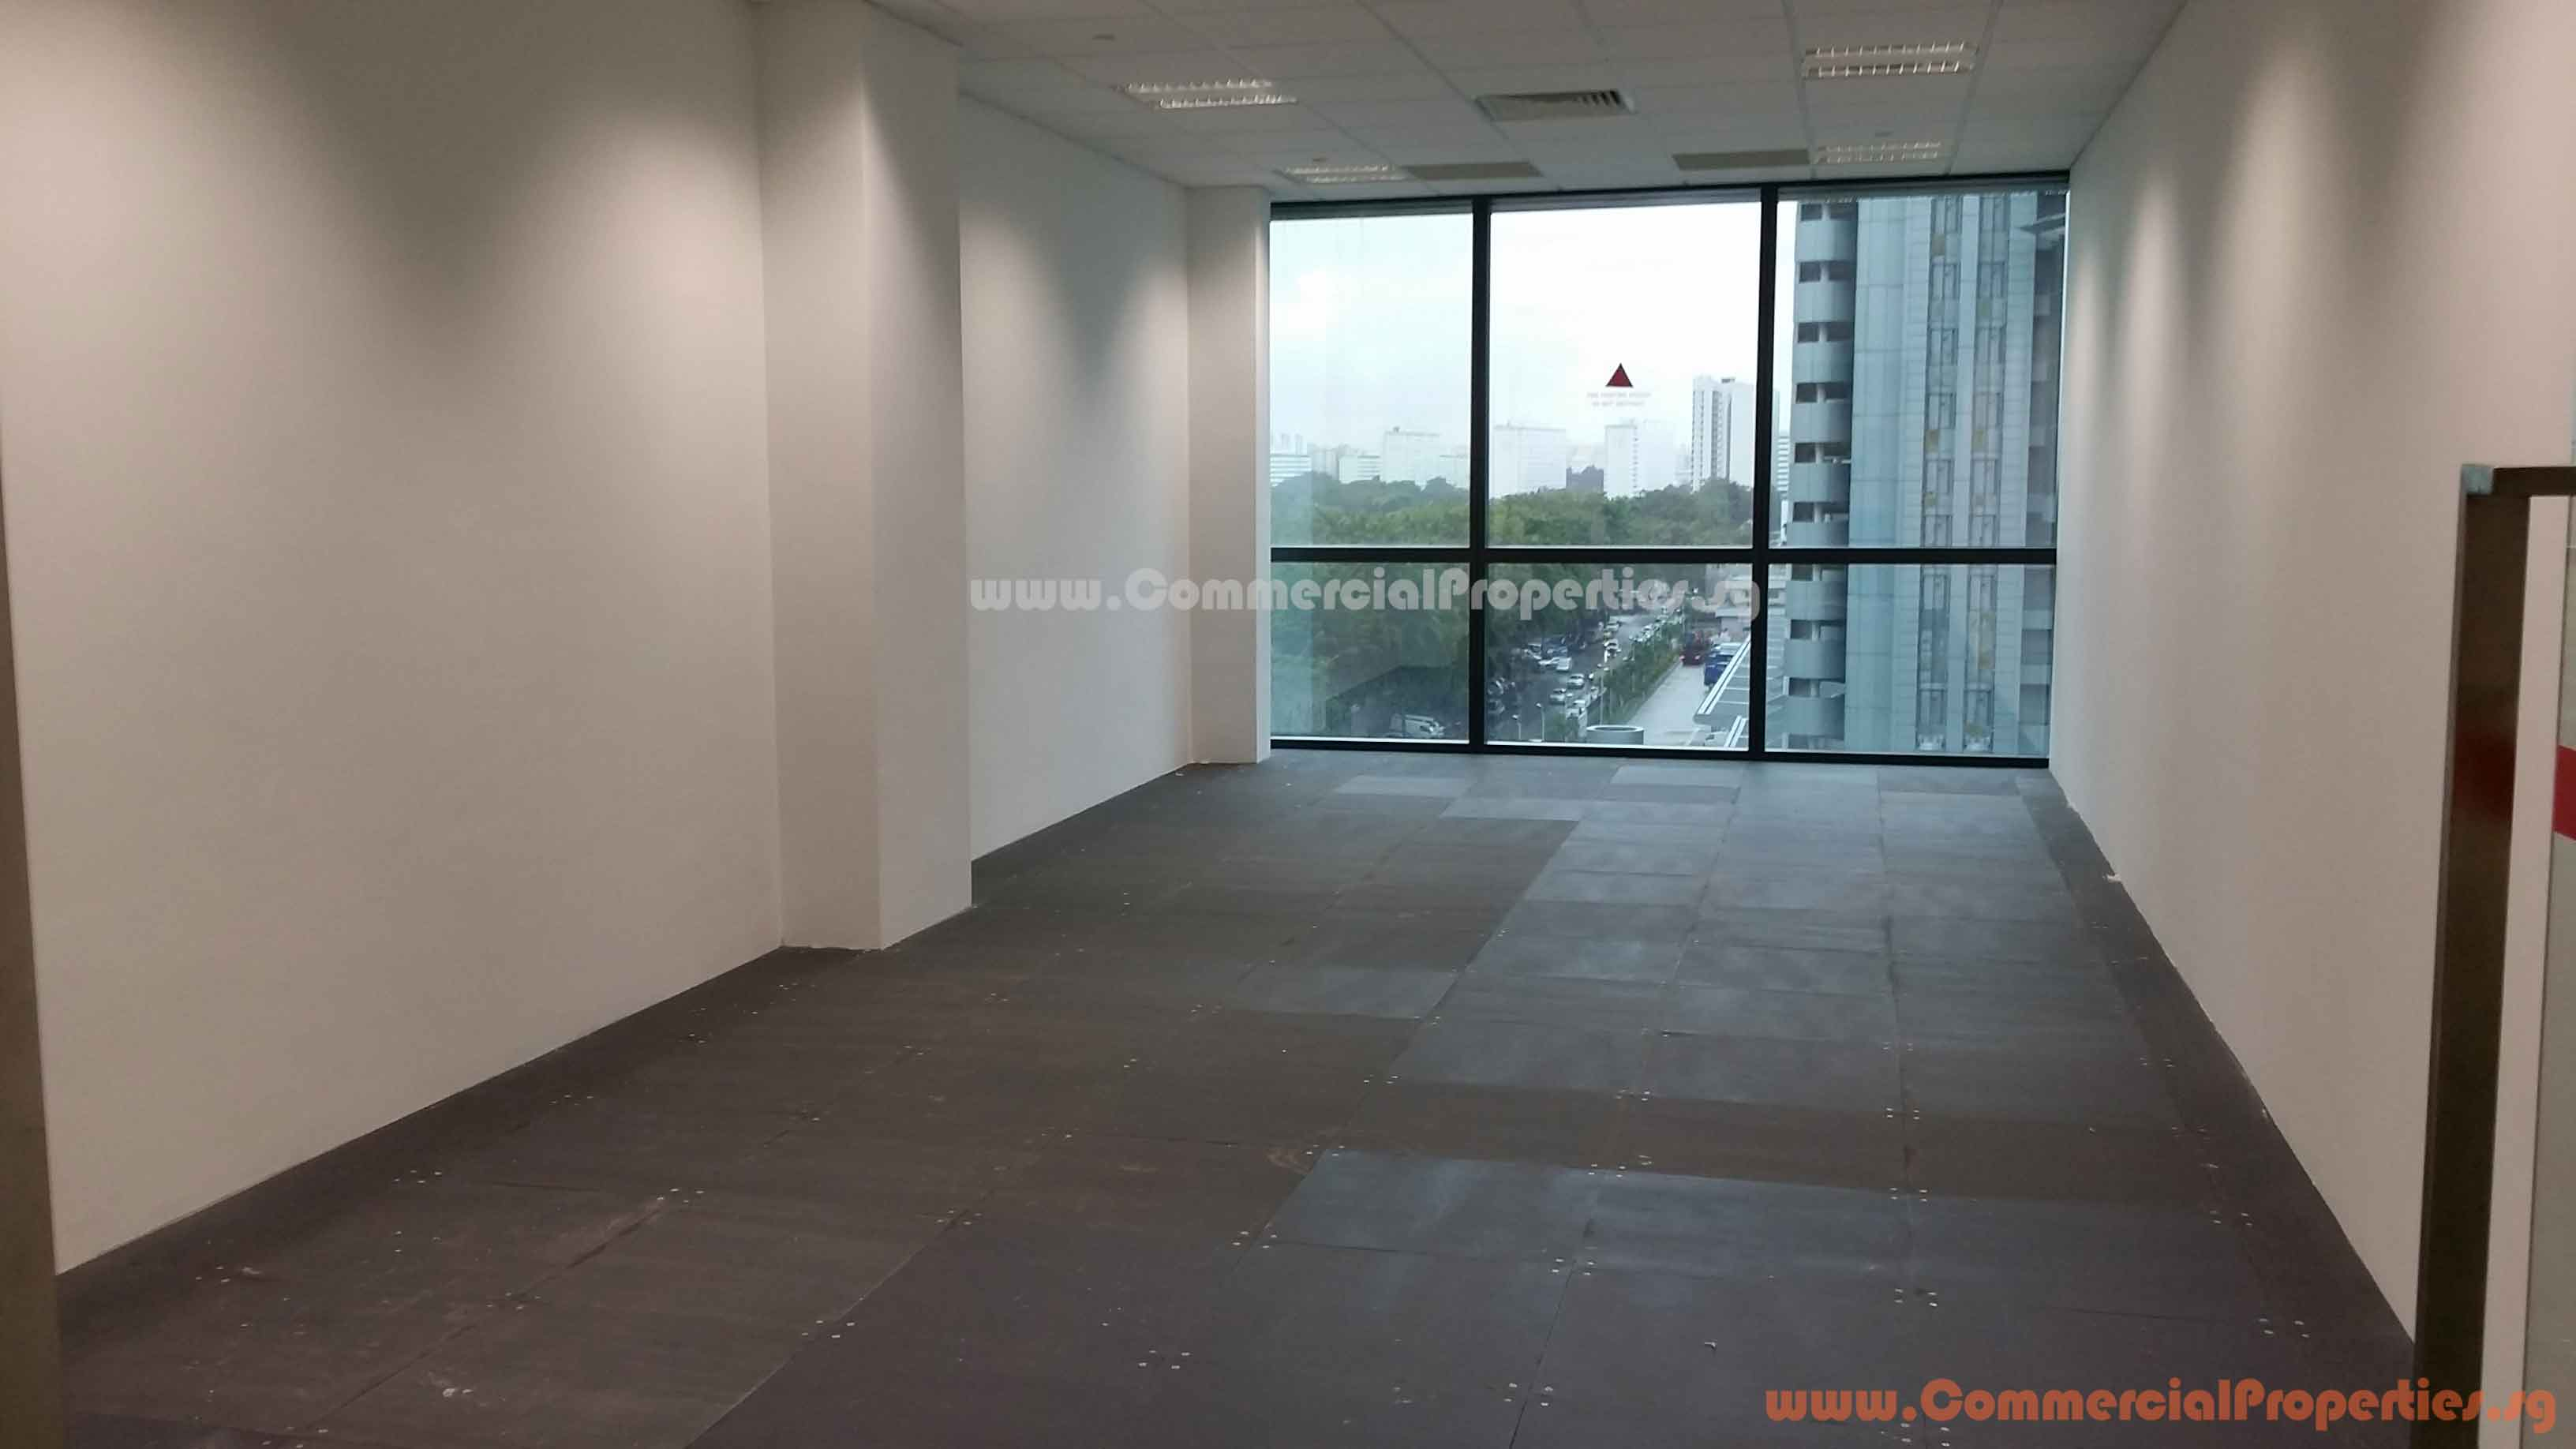 Paya Lebar Square Rental | Paya Lebar Square Office Rental |